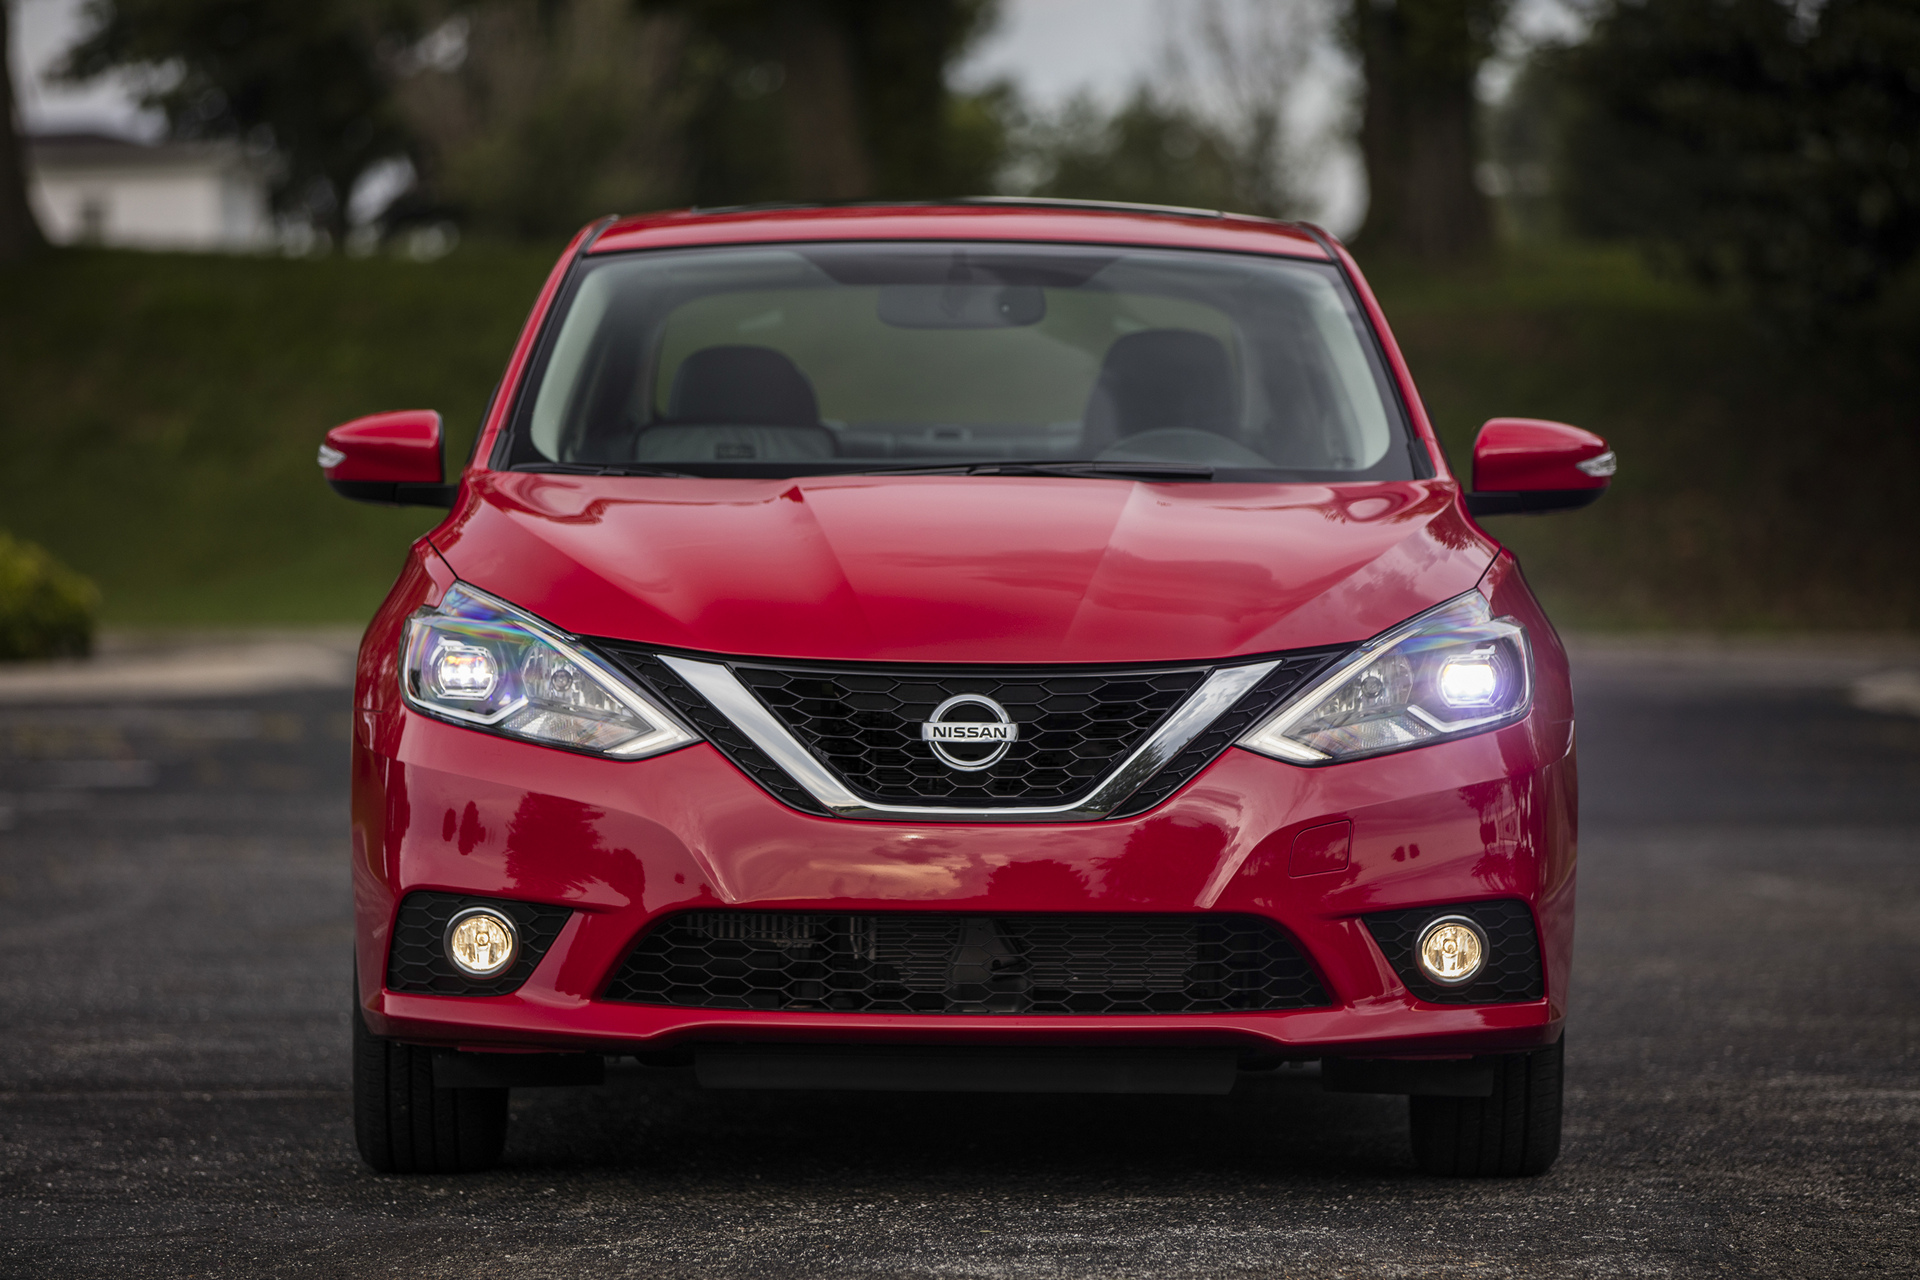 2017 Nissan Sentra SR Turbo © Nissan Motor Co., Ltd.